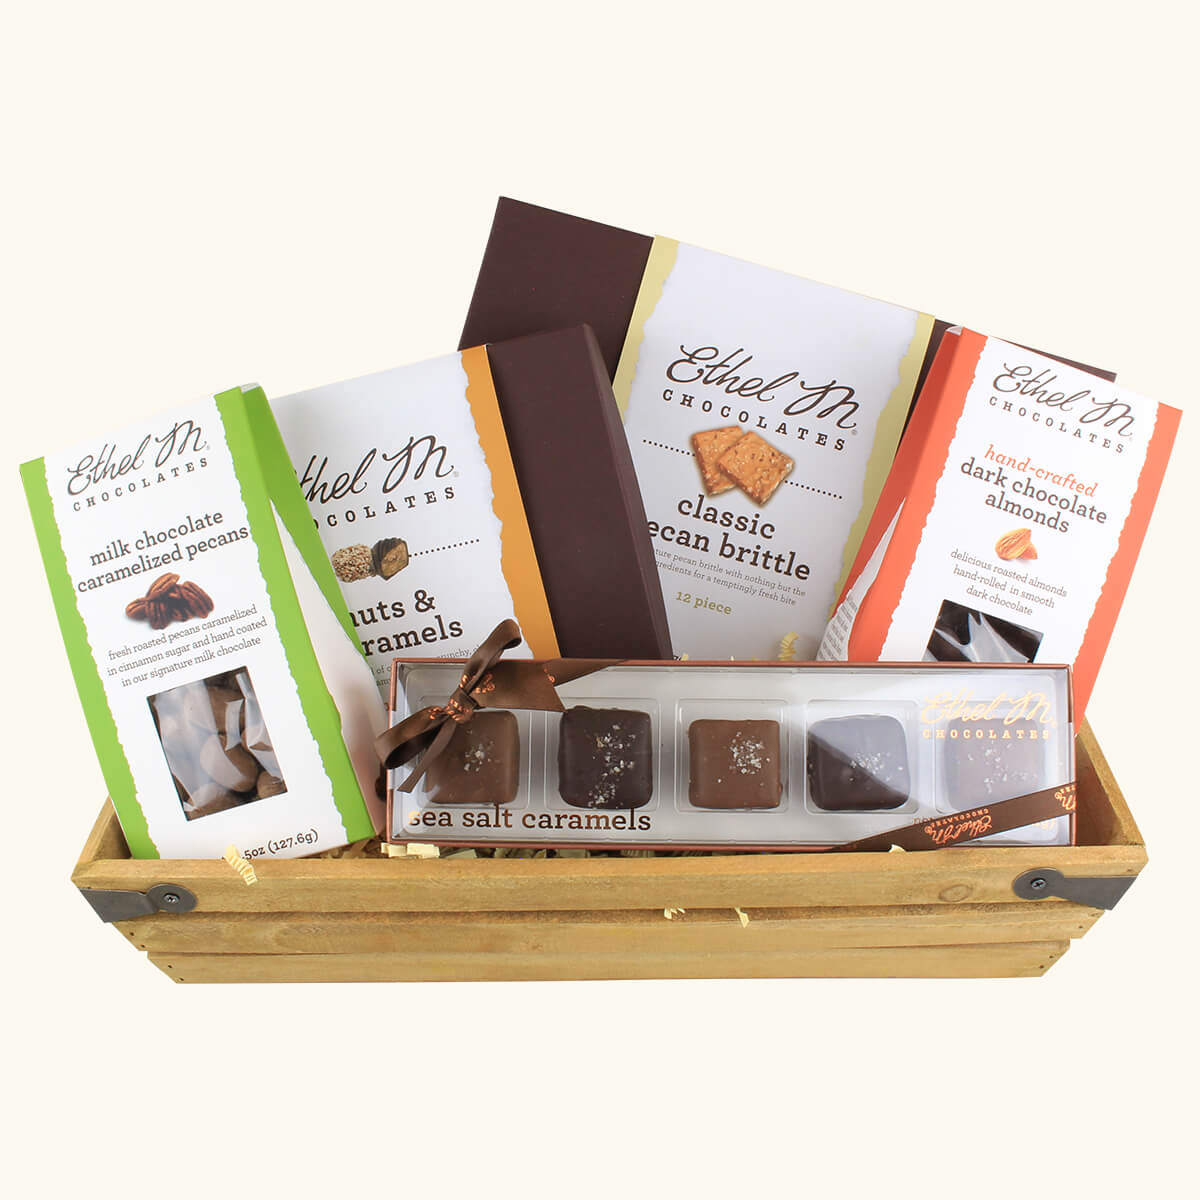 Nut and Caramels Gift crate